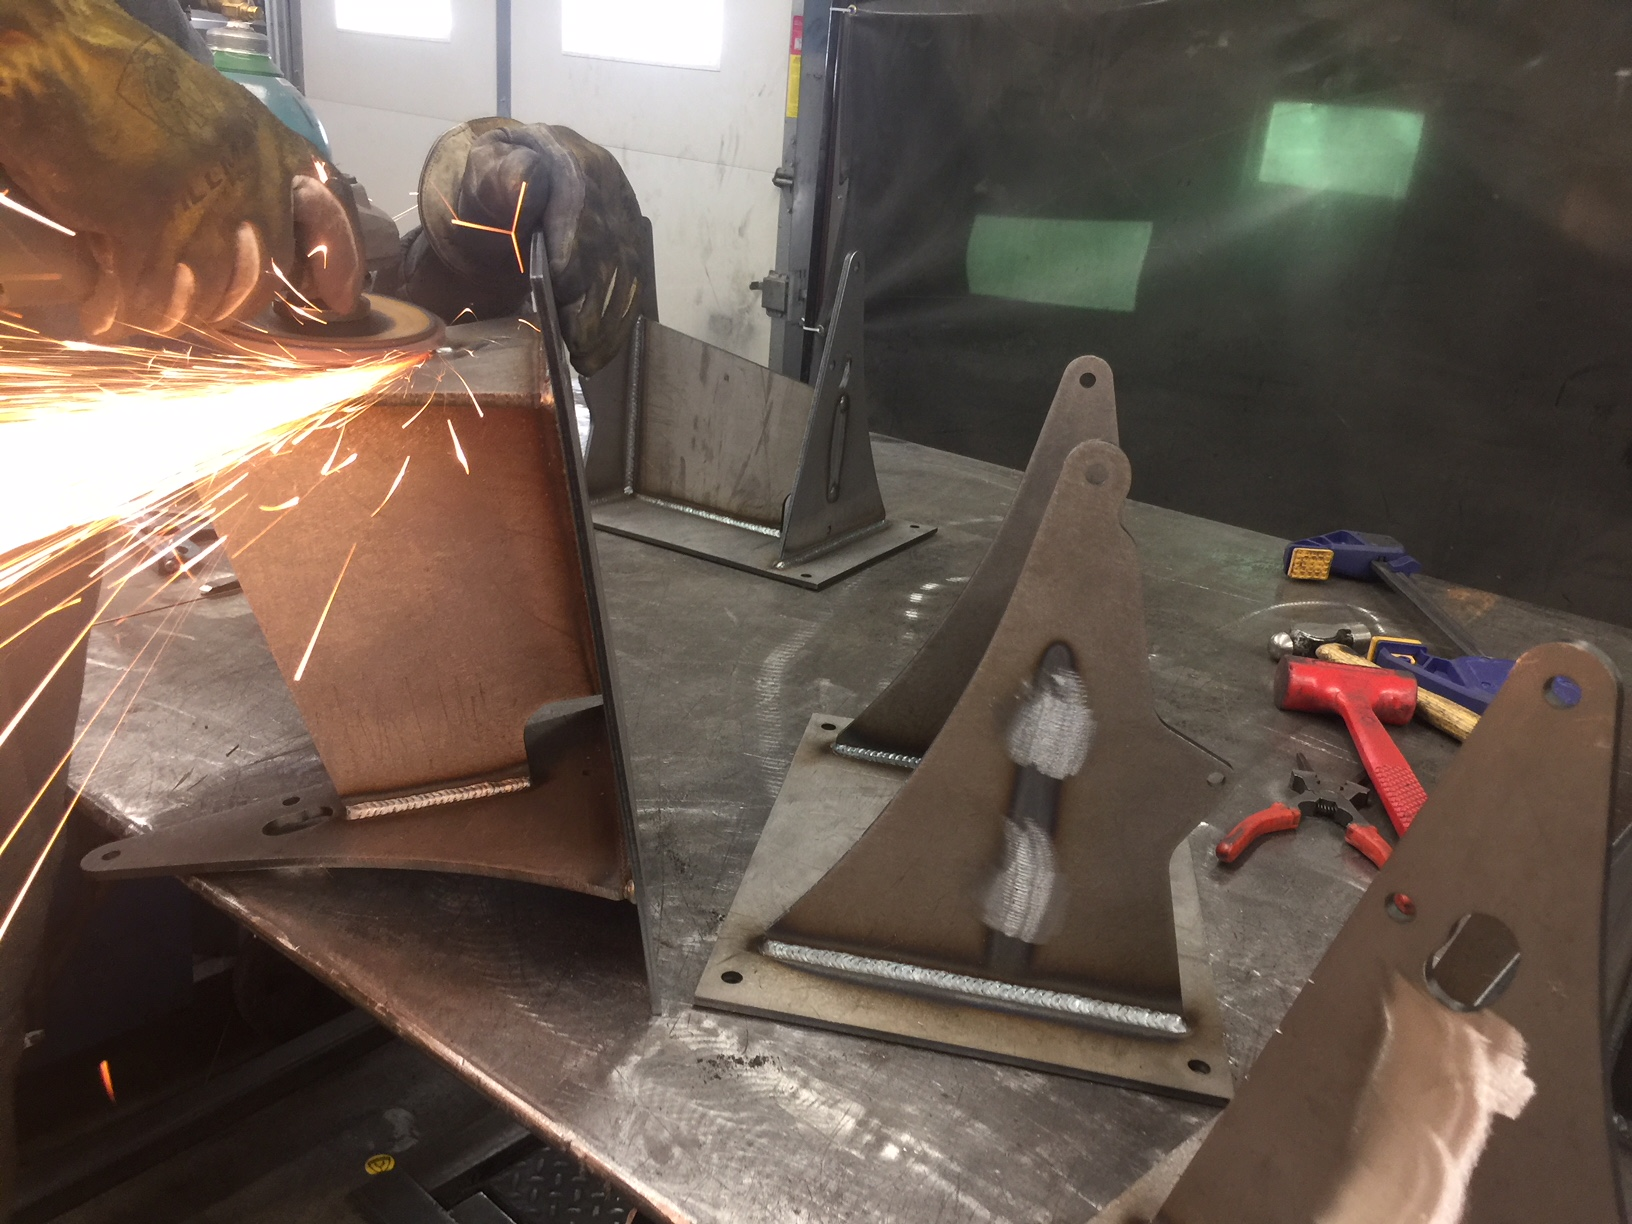 Post weld cleanup on the base weldment. These guys really know how to lay down some nice welds.